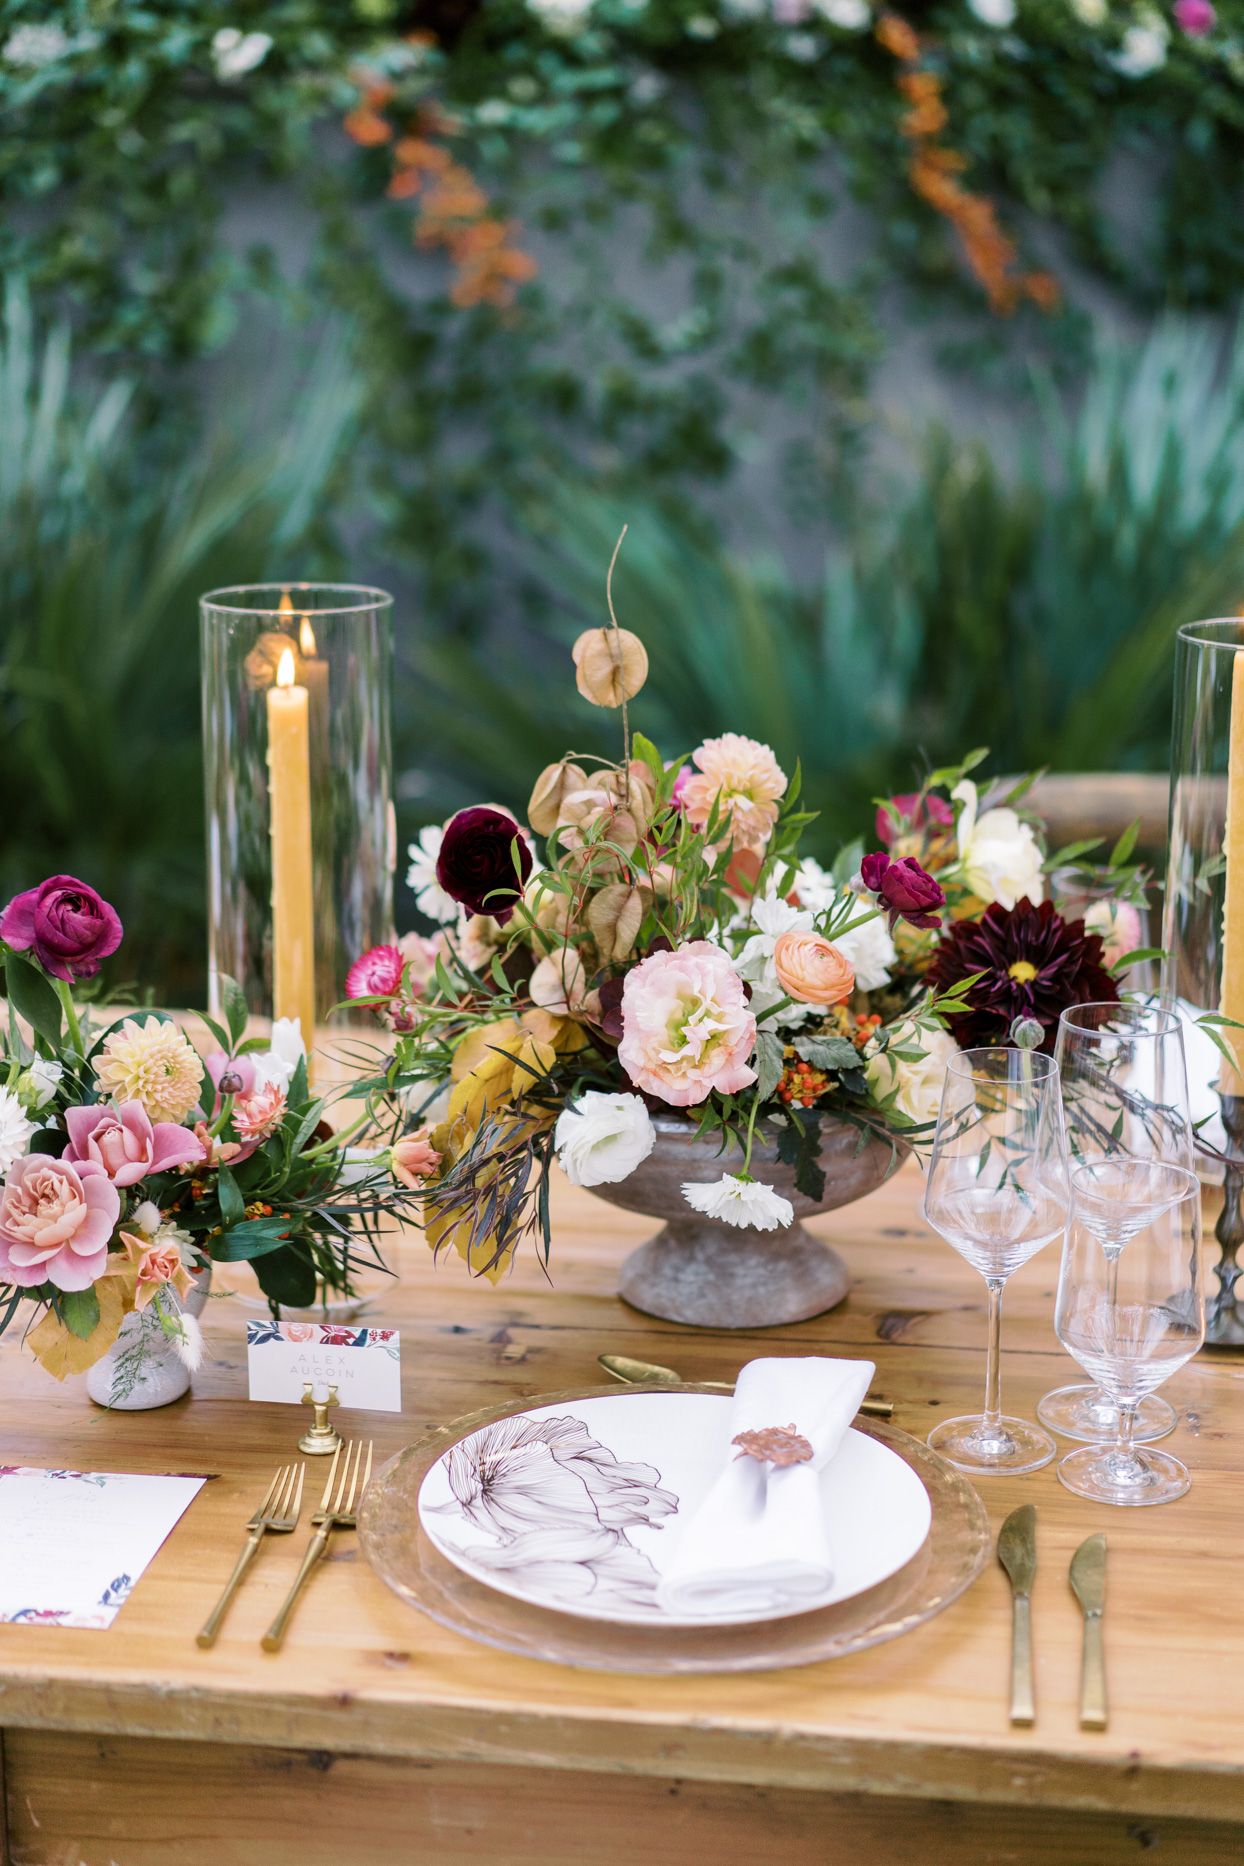 floral place setting at outdoor wooden reception table